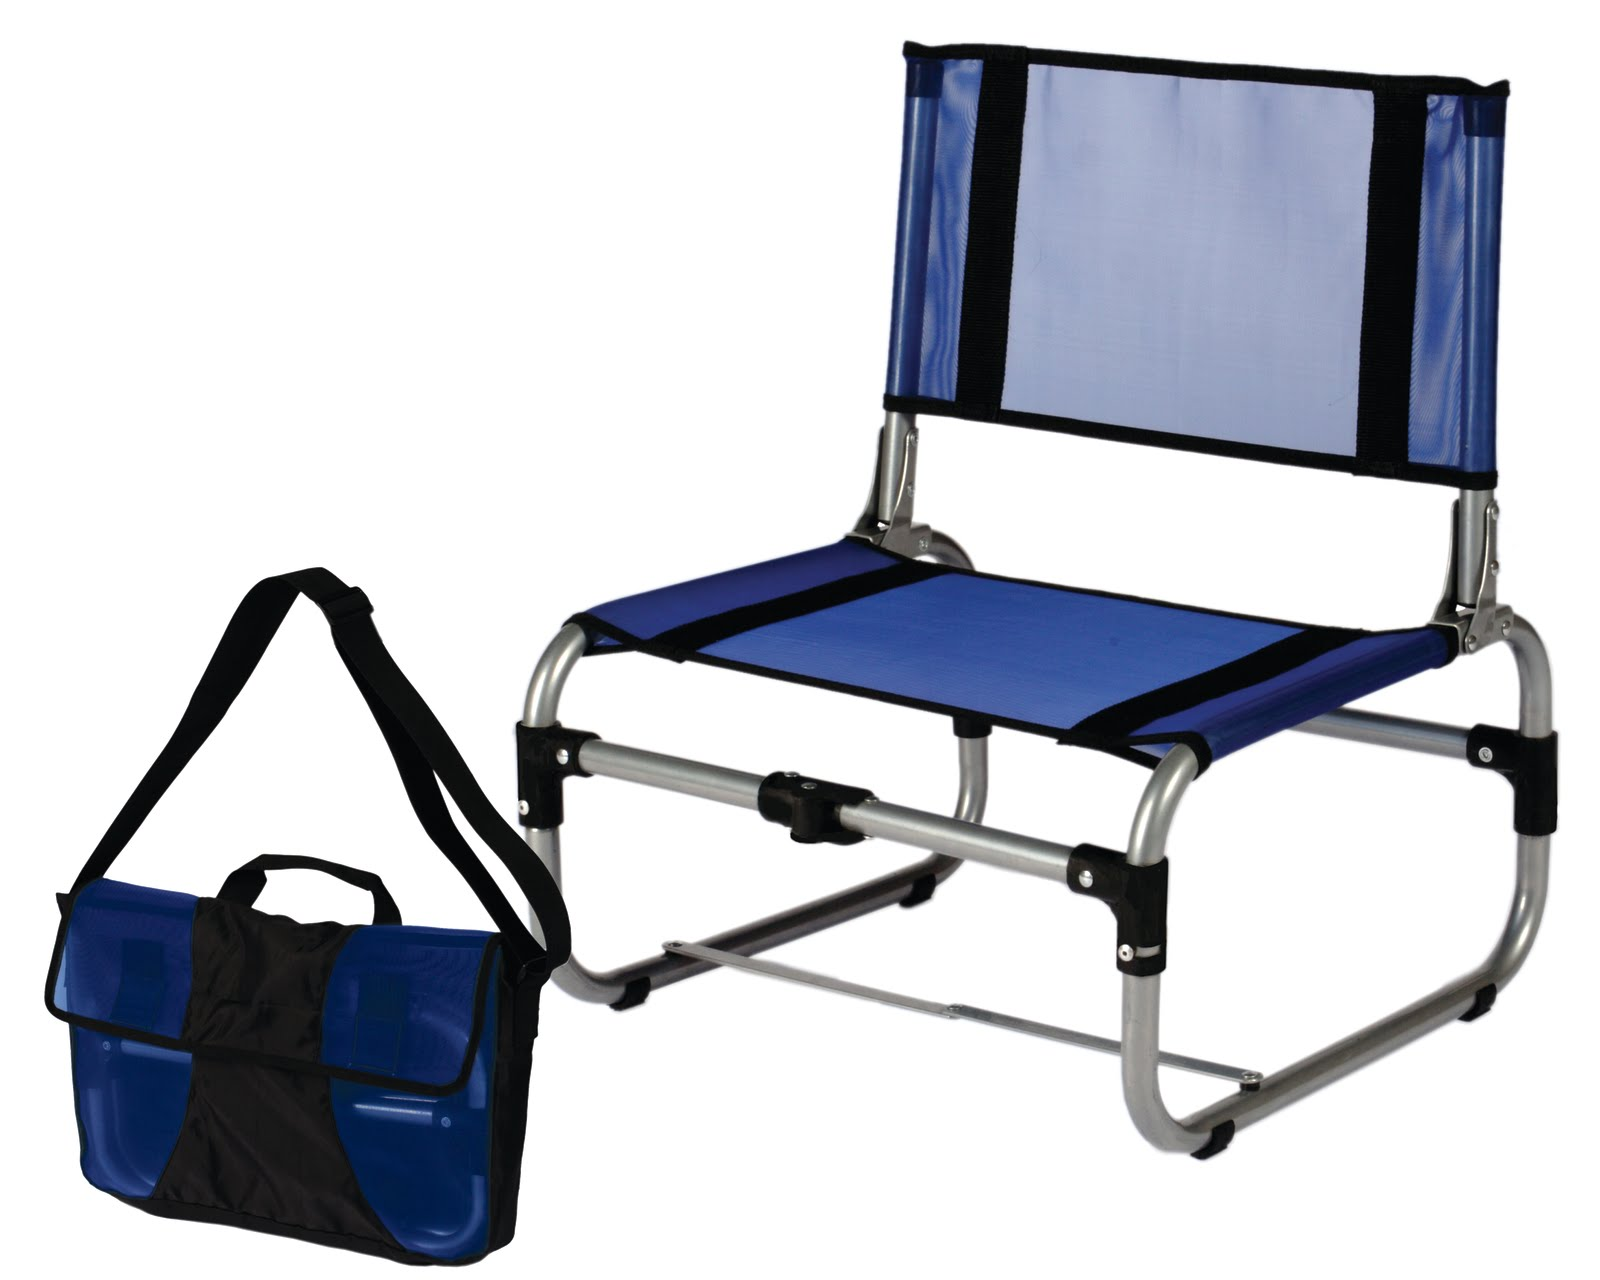 "Powderfin Outdoors Travel Chair s ""Larry Chair"" Portable Chair"